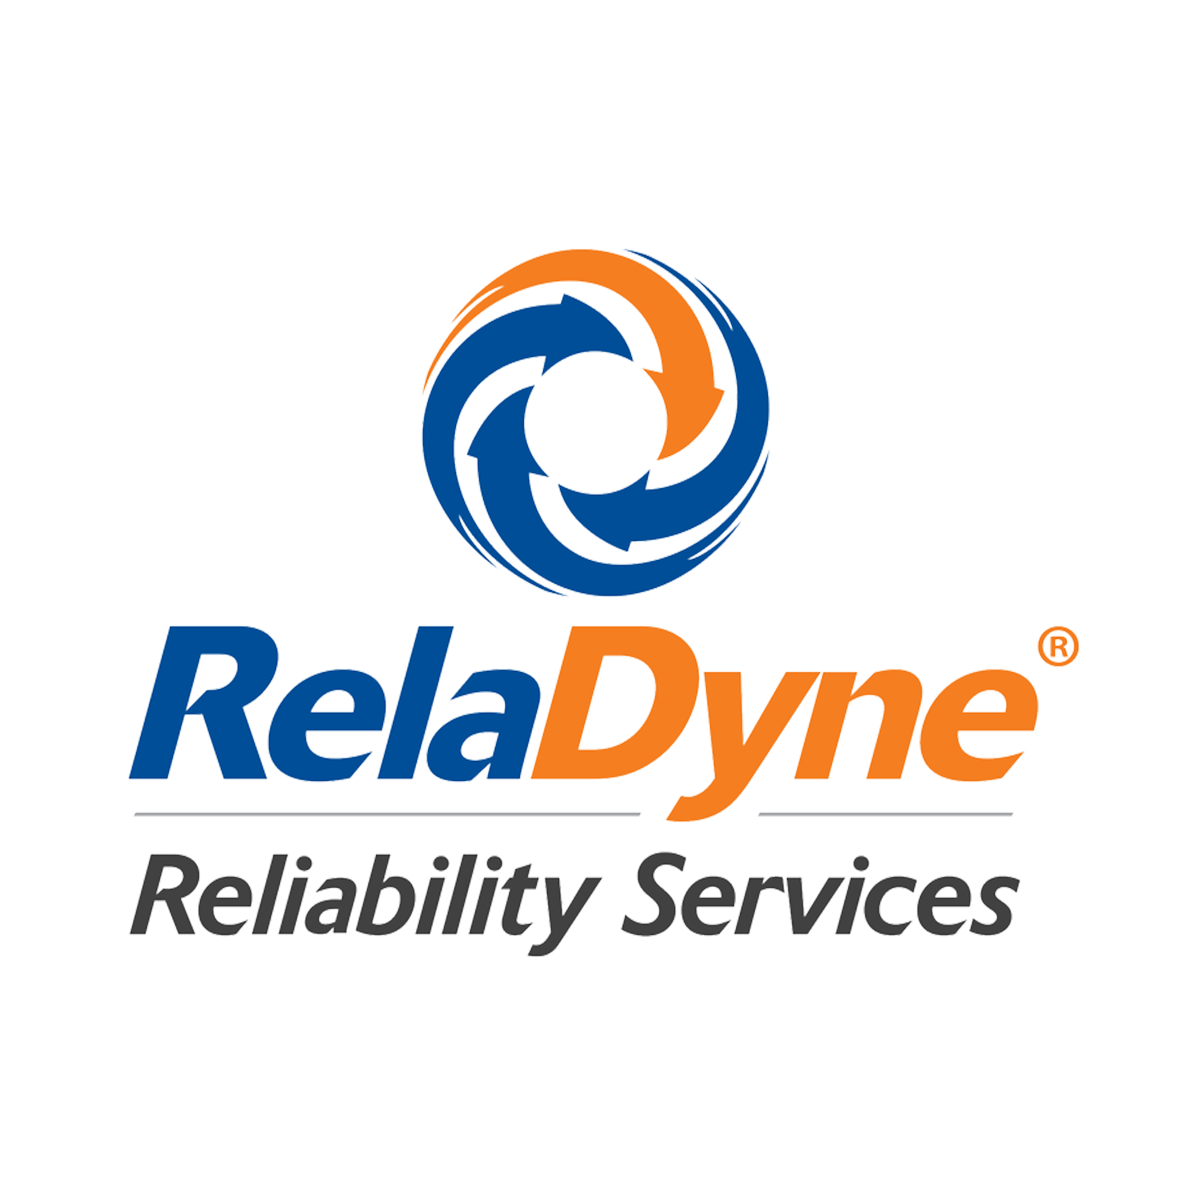 RelaDyne Reliability Services